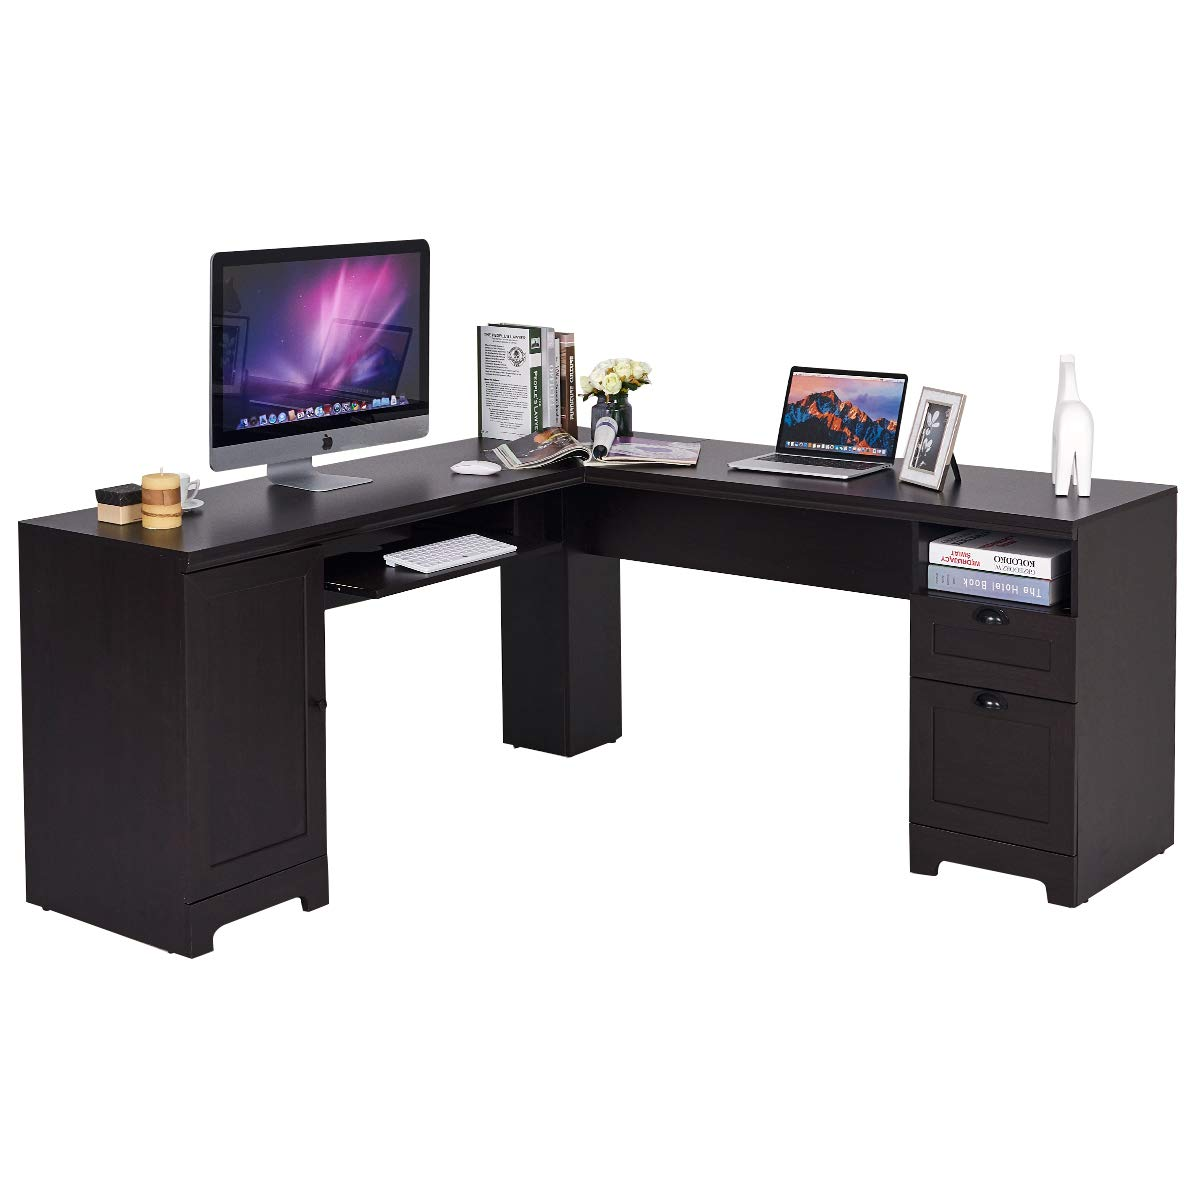 Wonderful Tangkula L Shaped Desk Corner Computer Desk, With Drawers And Storage  Shelf, Home Office Desk, Sturdy And Space Saving Writing Table, Wood Grain  (Black)